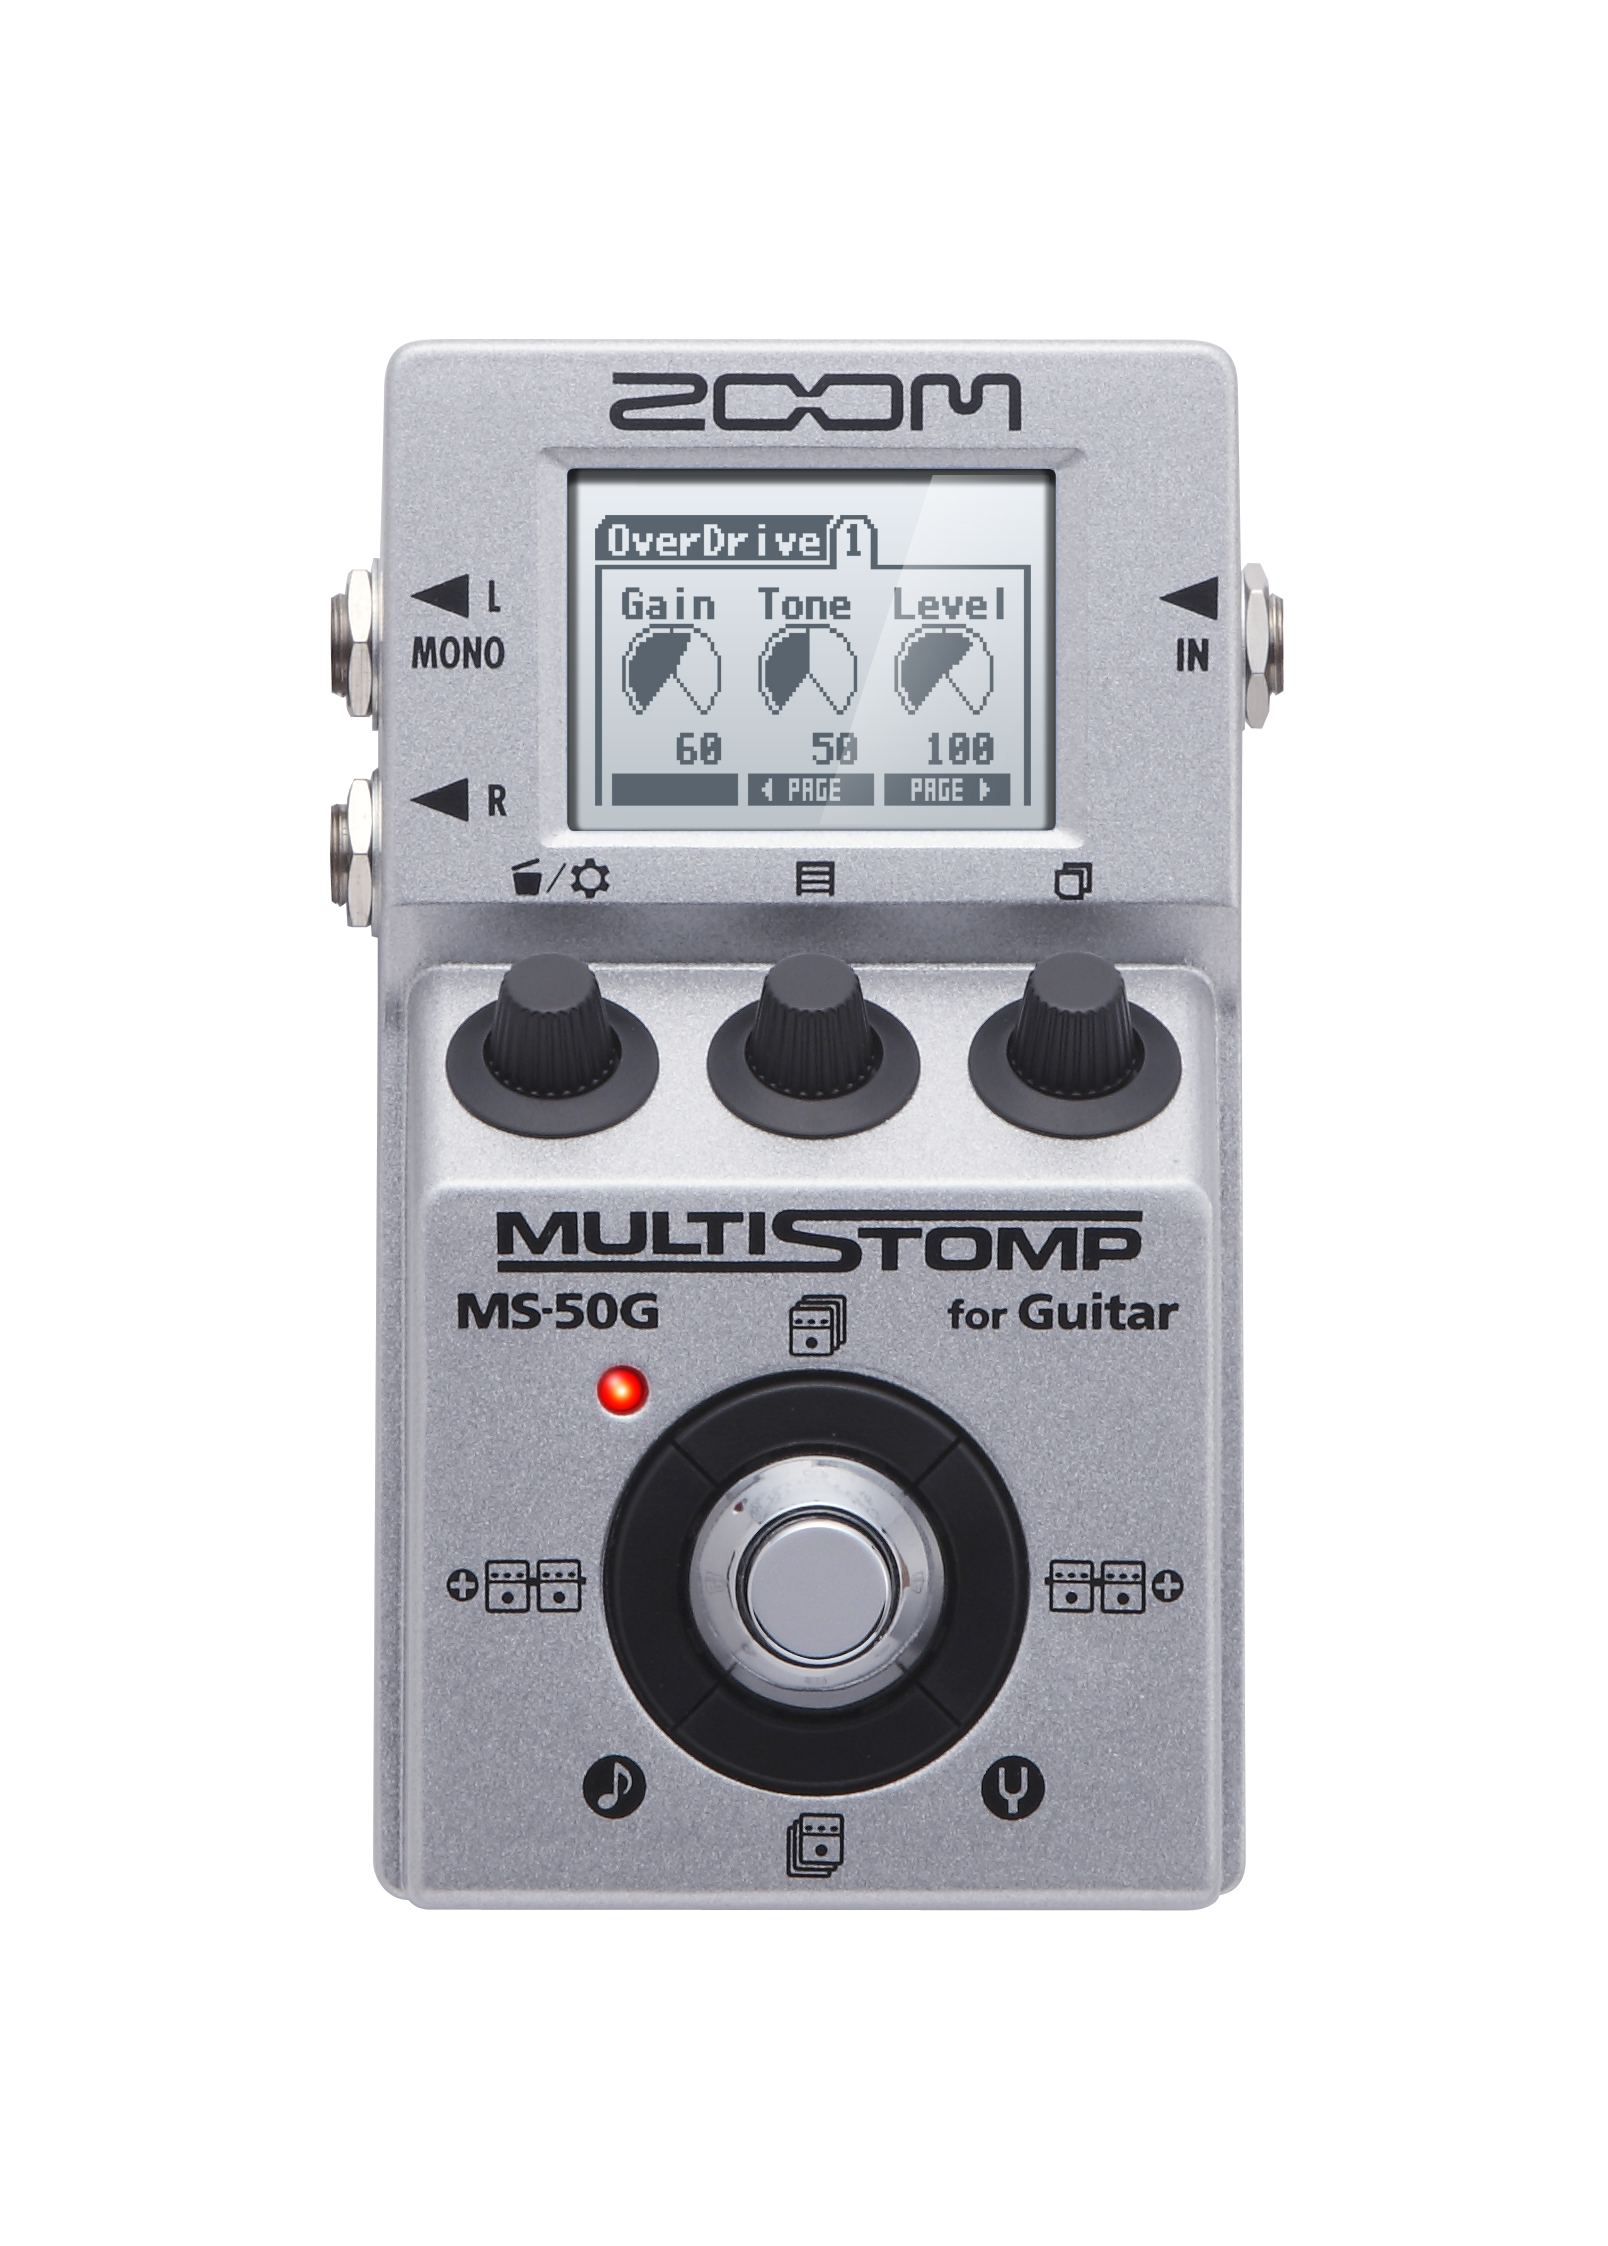 MS-50G / MultiStomp Guitar Pedal 画像1